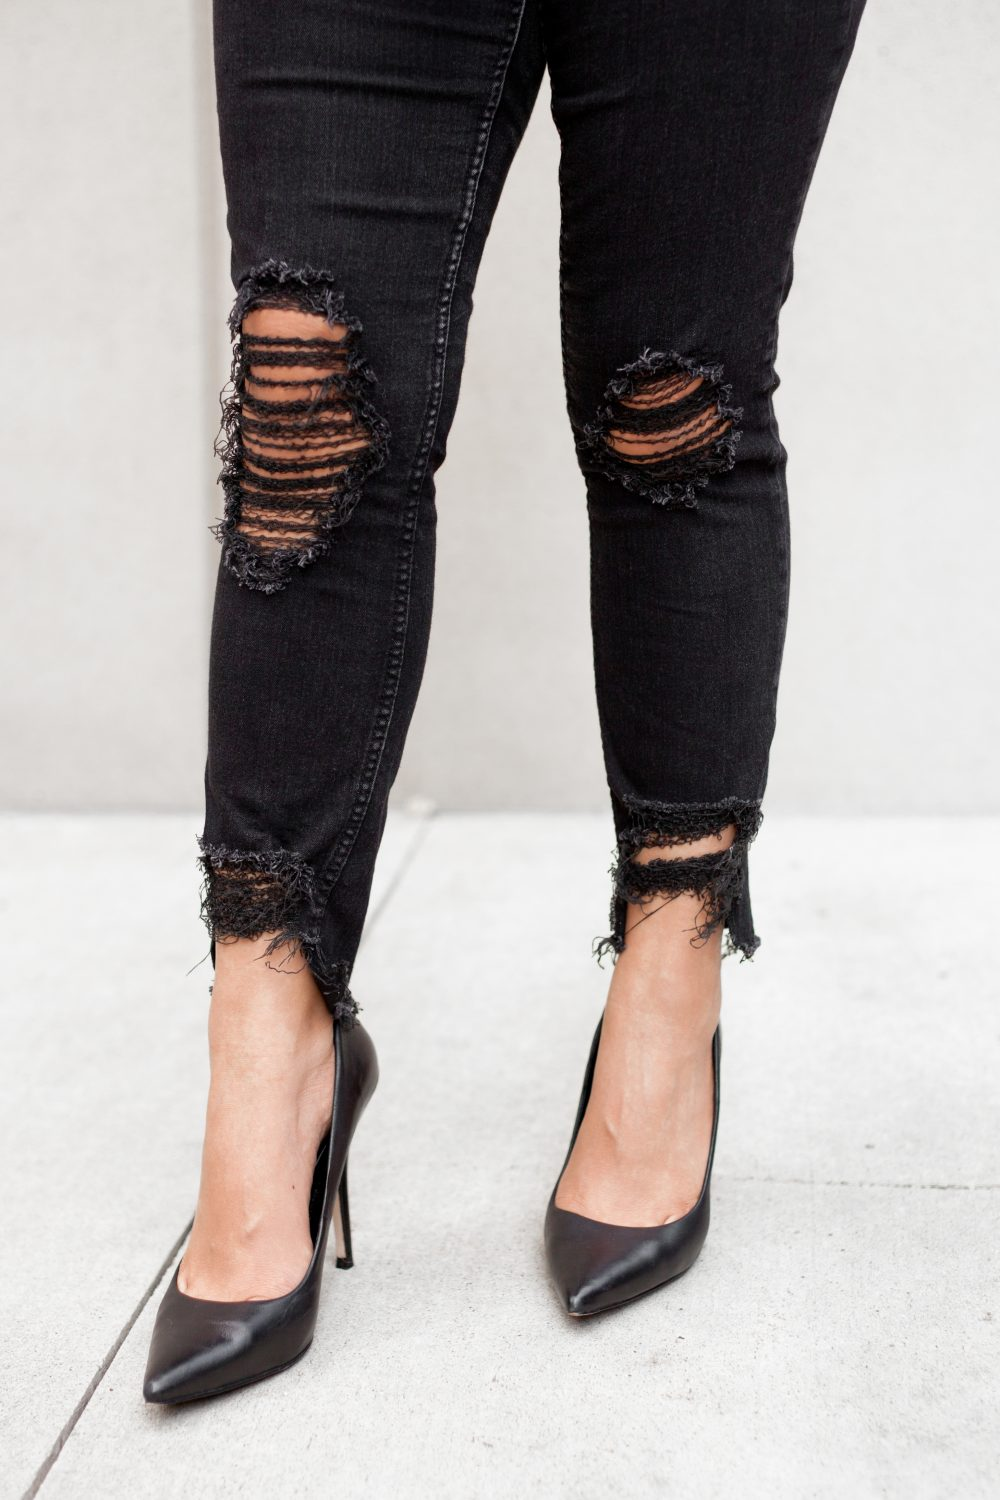 Ripped black jeans diy - Diy (Do It Your Self)